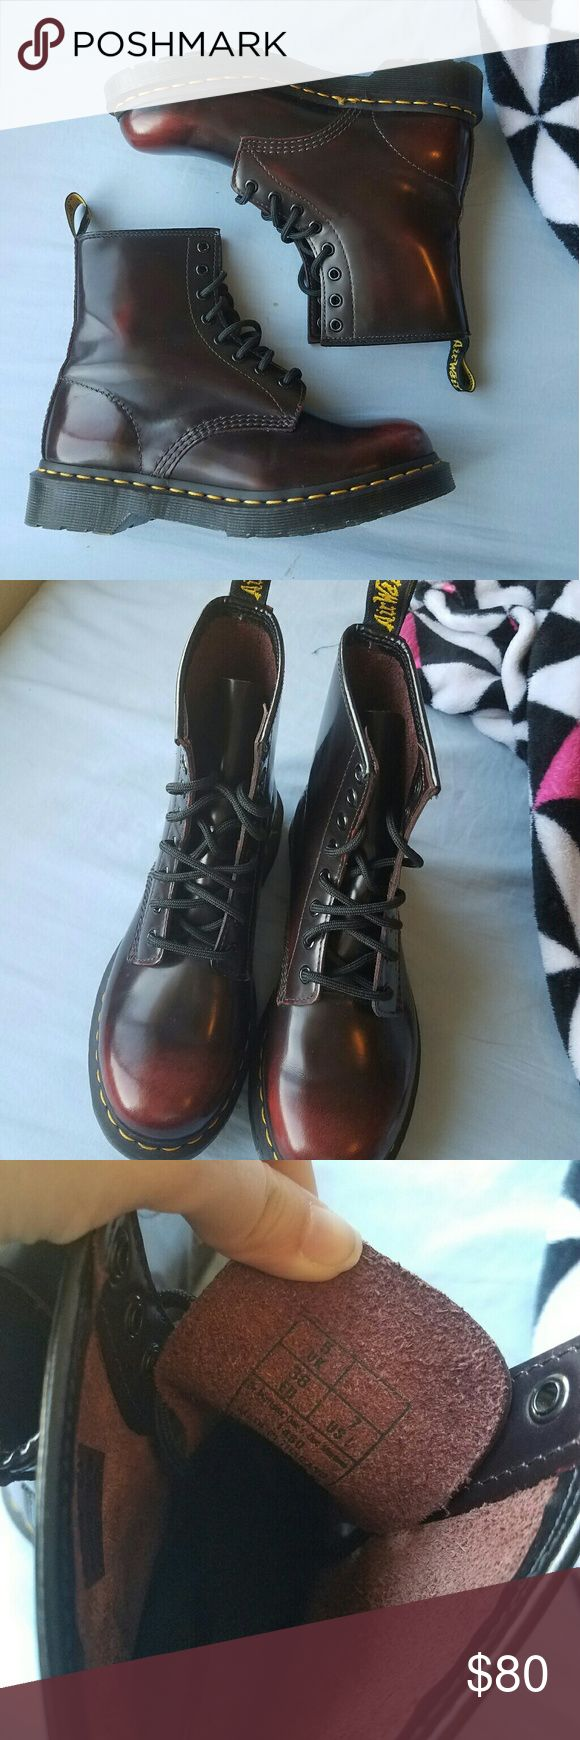 NWOB doc martens Some gorgeous doc Martens. These Dr Martens are absolutely amazing. They're like new (I legit bought them online, and tried them on for about ten minutes before I came to the realization I have too many shoes). They don't have the box, but they're flawless.  They're a black color with red undertones and ombr? effects. Size 7 . Dr. Martens Shoes Combat & Moto Boots